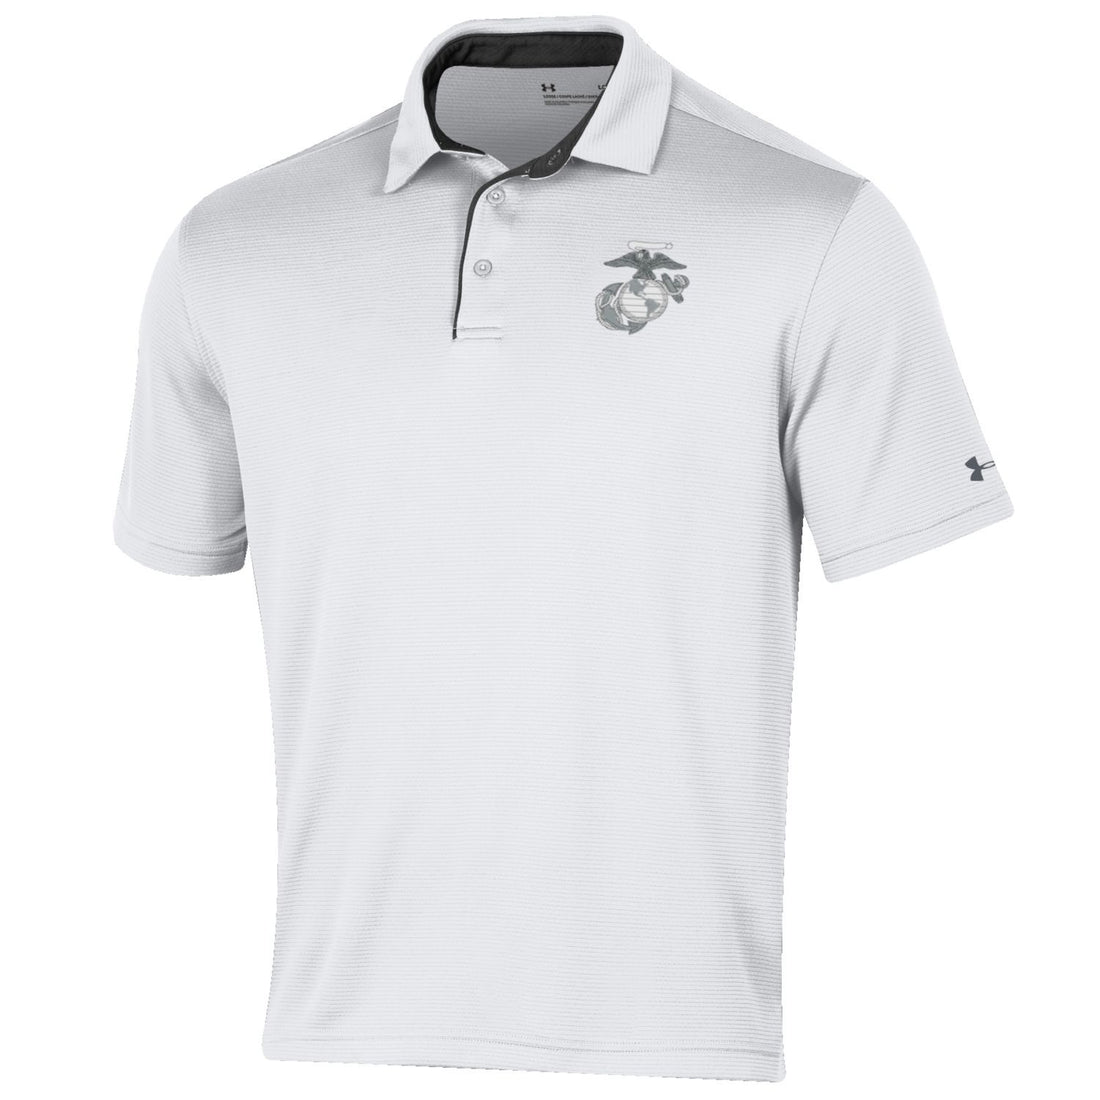 Under Armour Marines Tech Performance Polo White